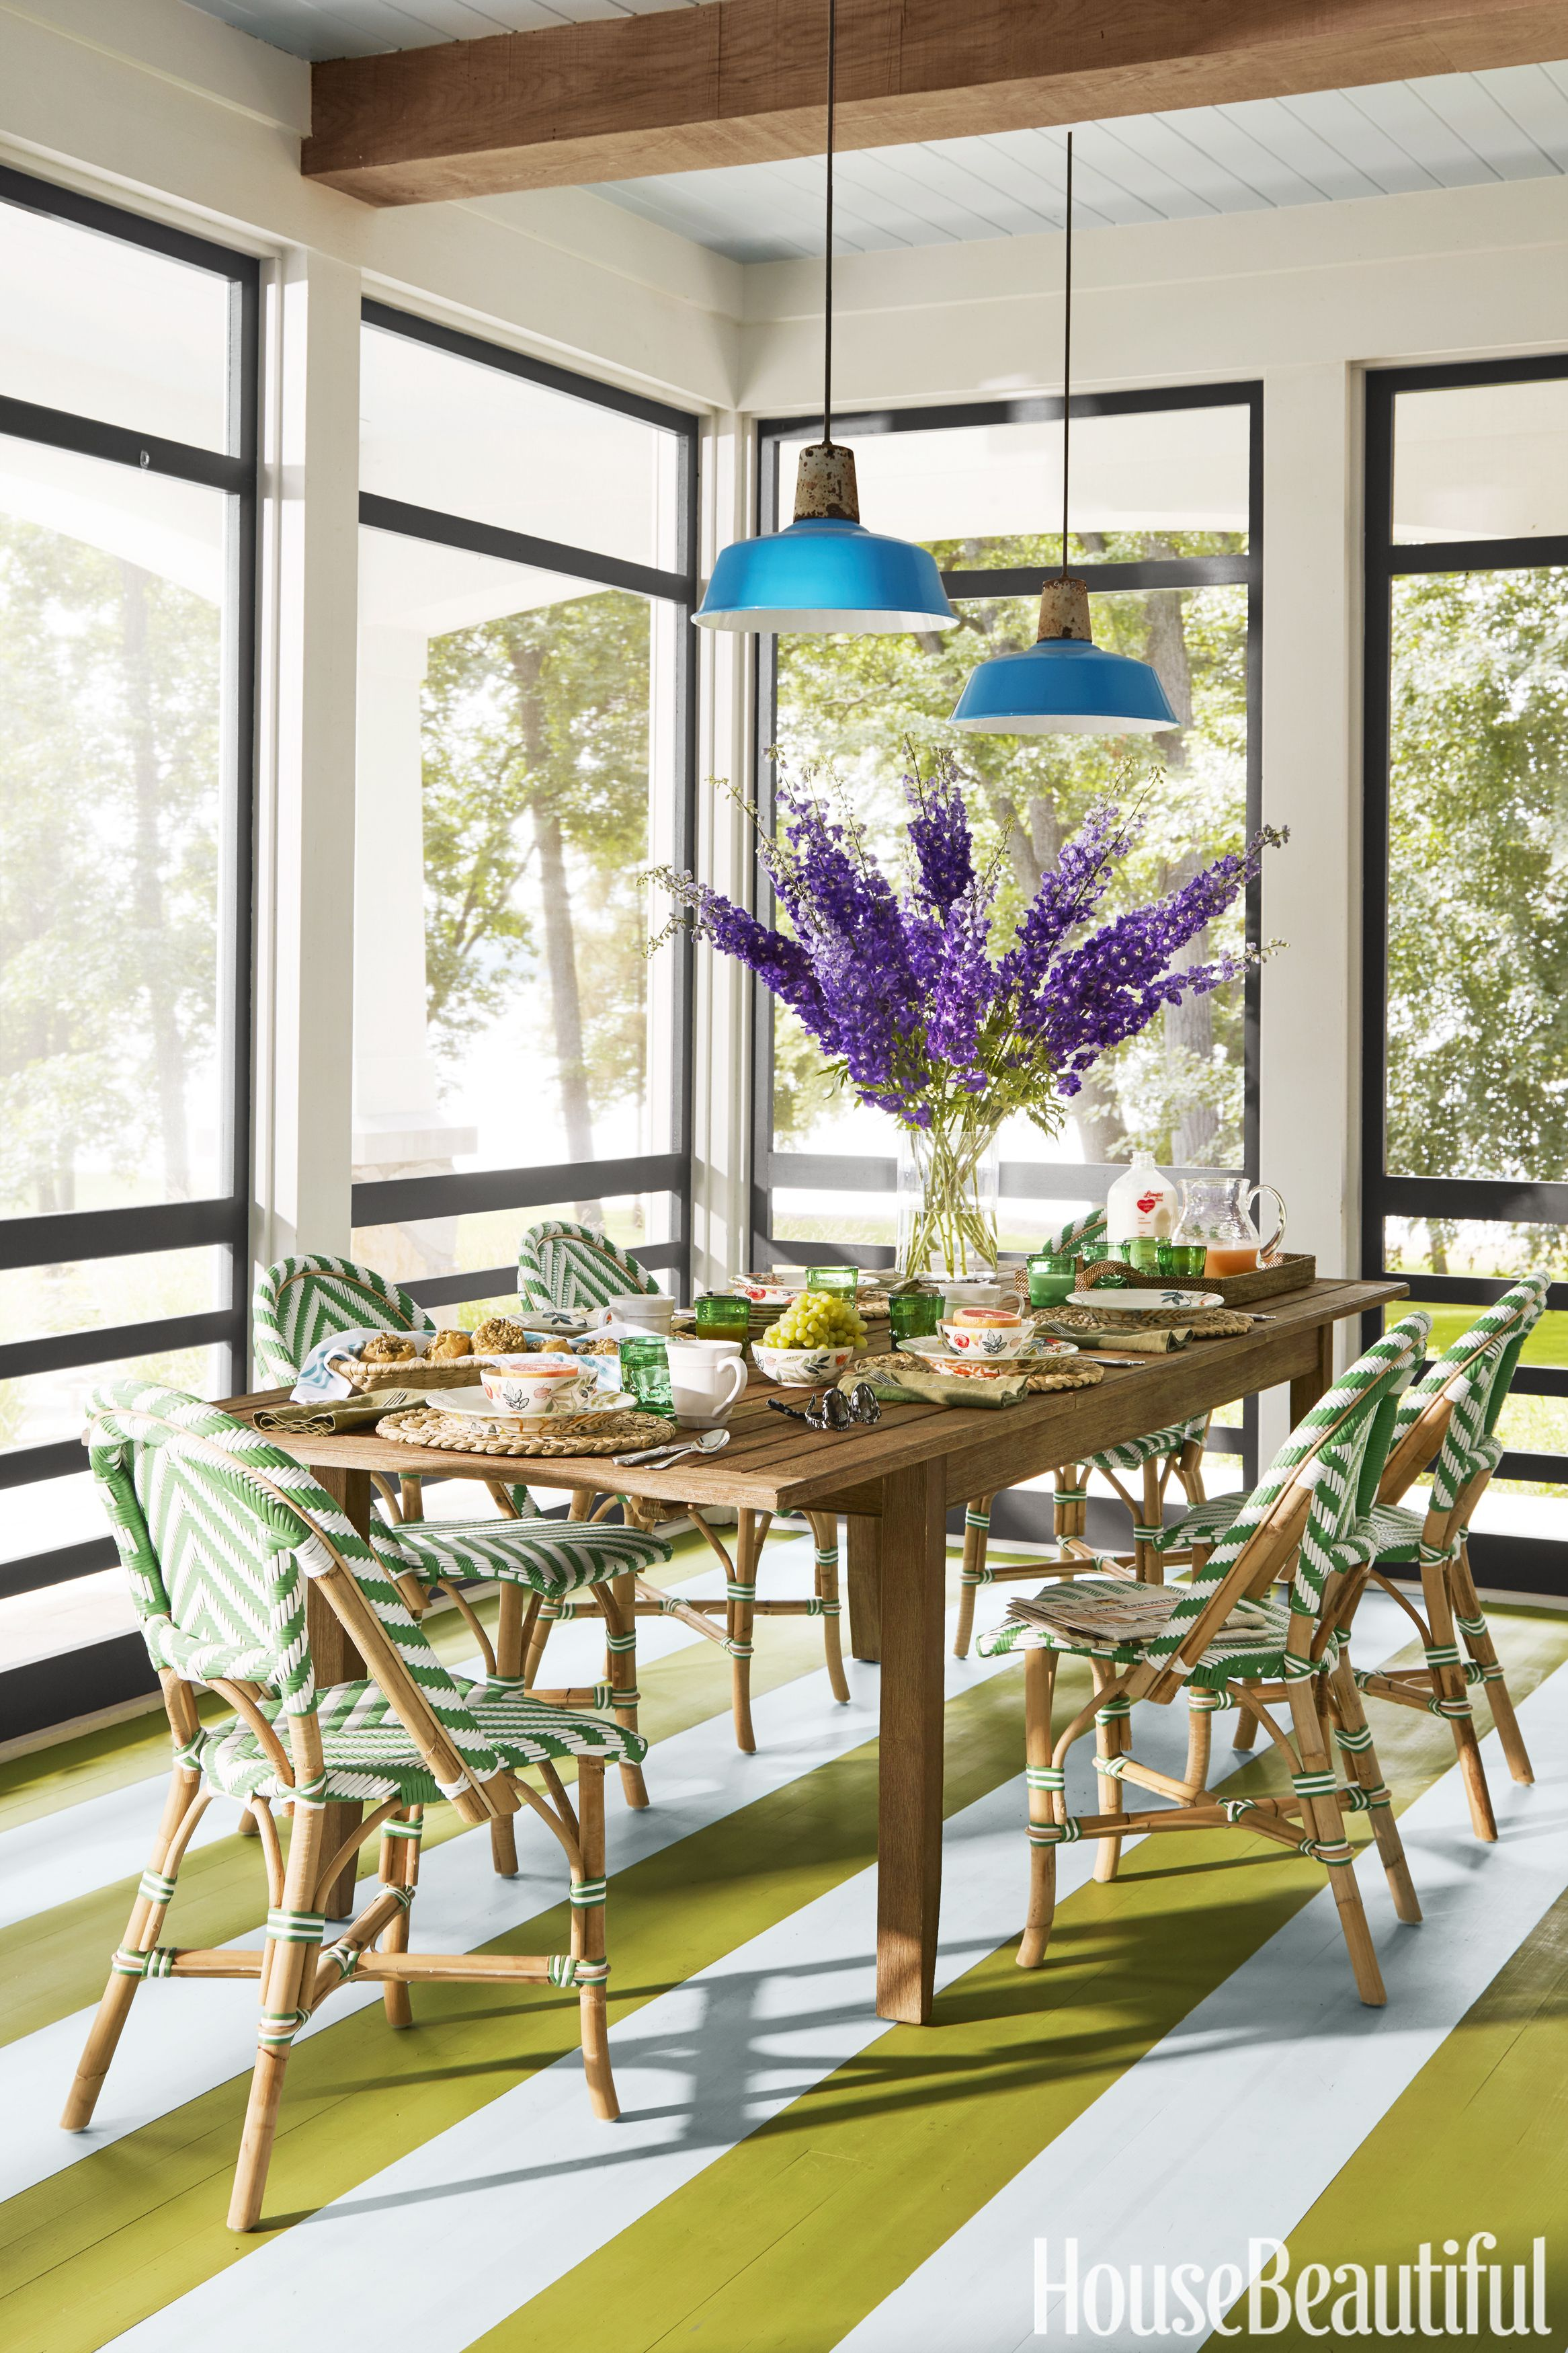 Pay.housebeautiful.com Entrancing Wisconsin Lake House  Summer Thornton Designs A Colorful Vacation Design Ideas